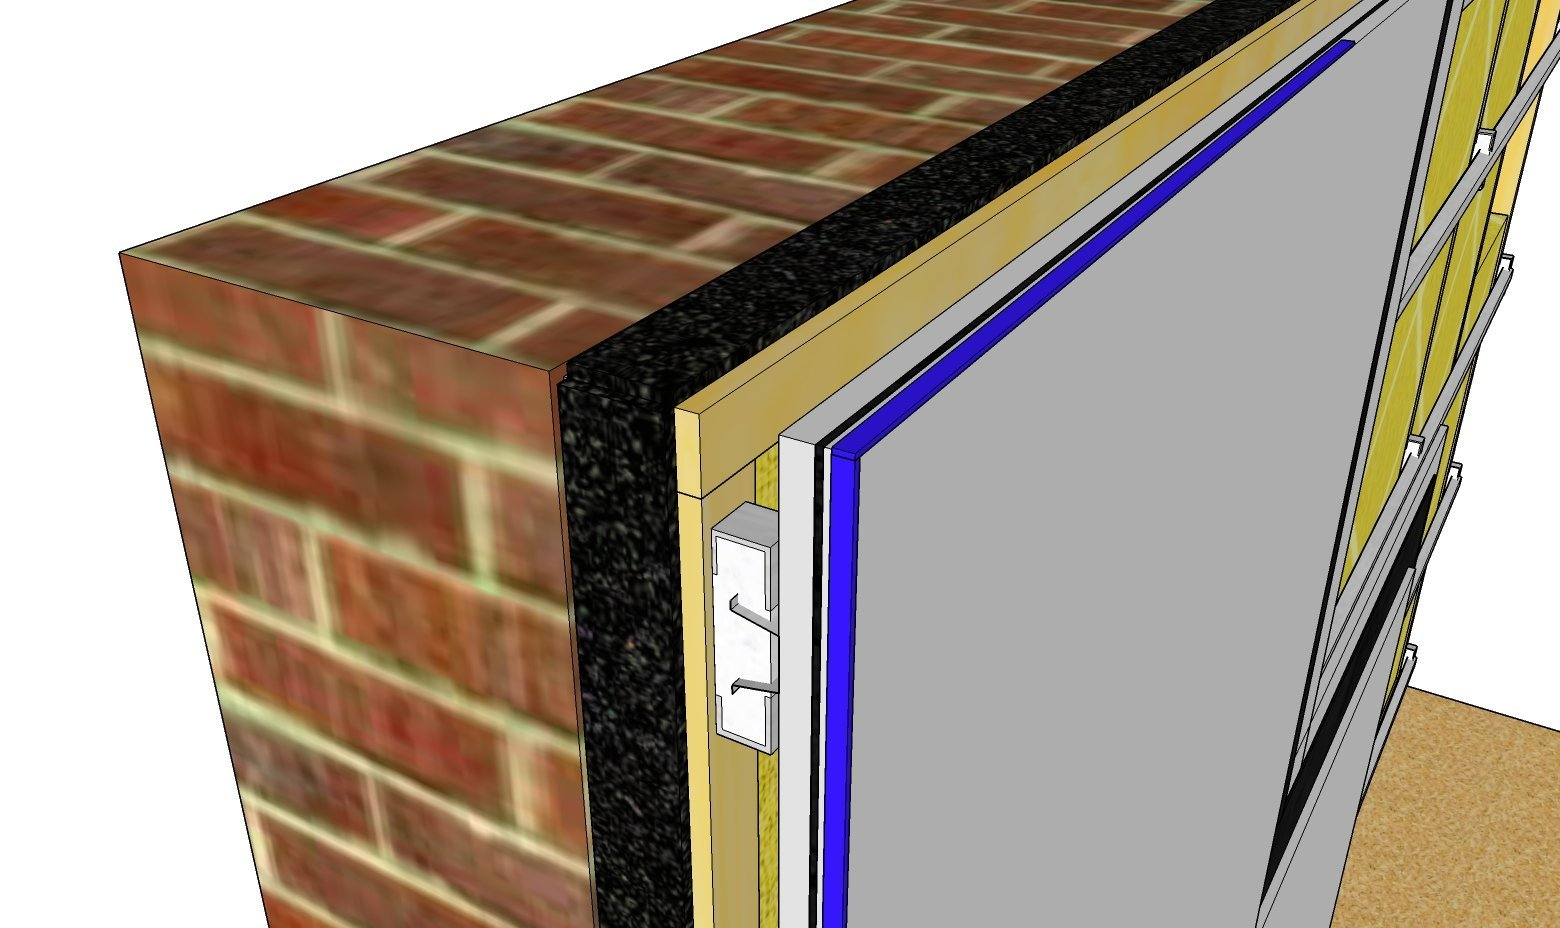 Stick On Soundproofing For Walls : Soundproofing a garden studio